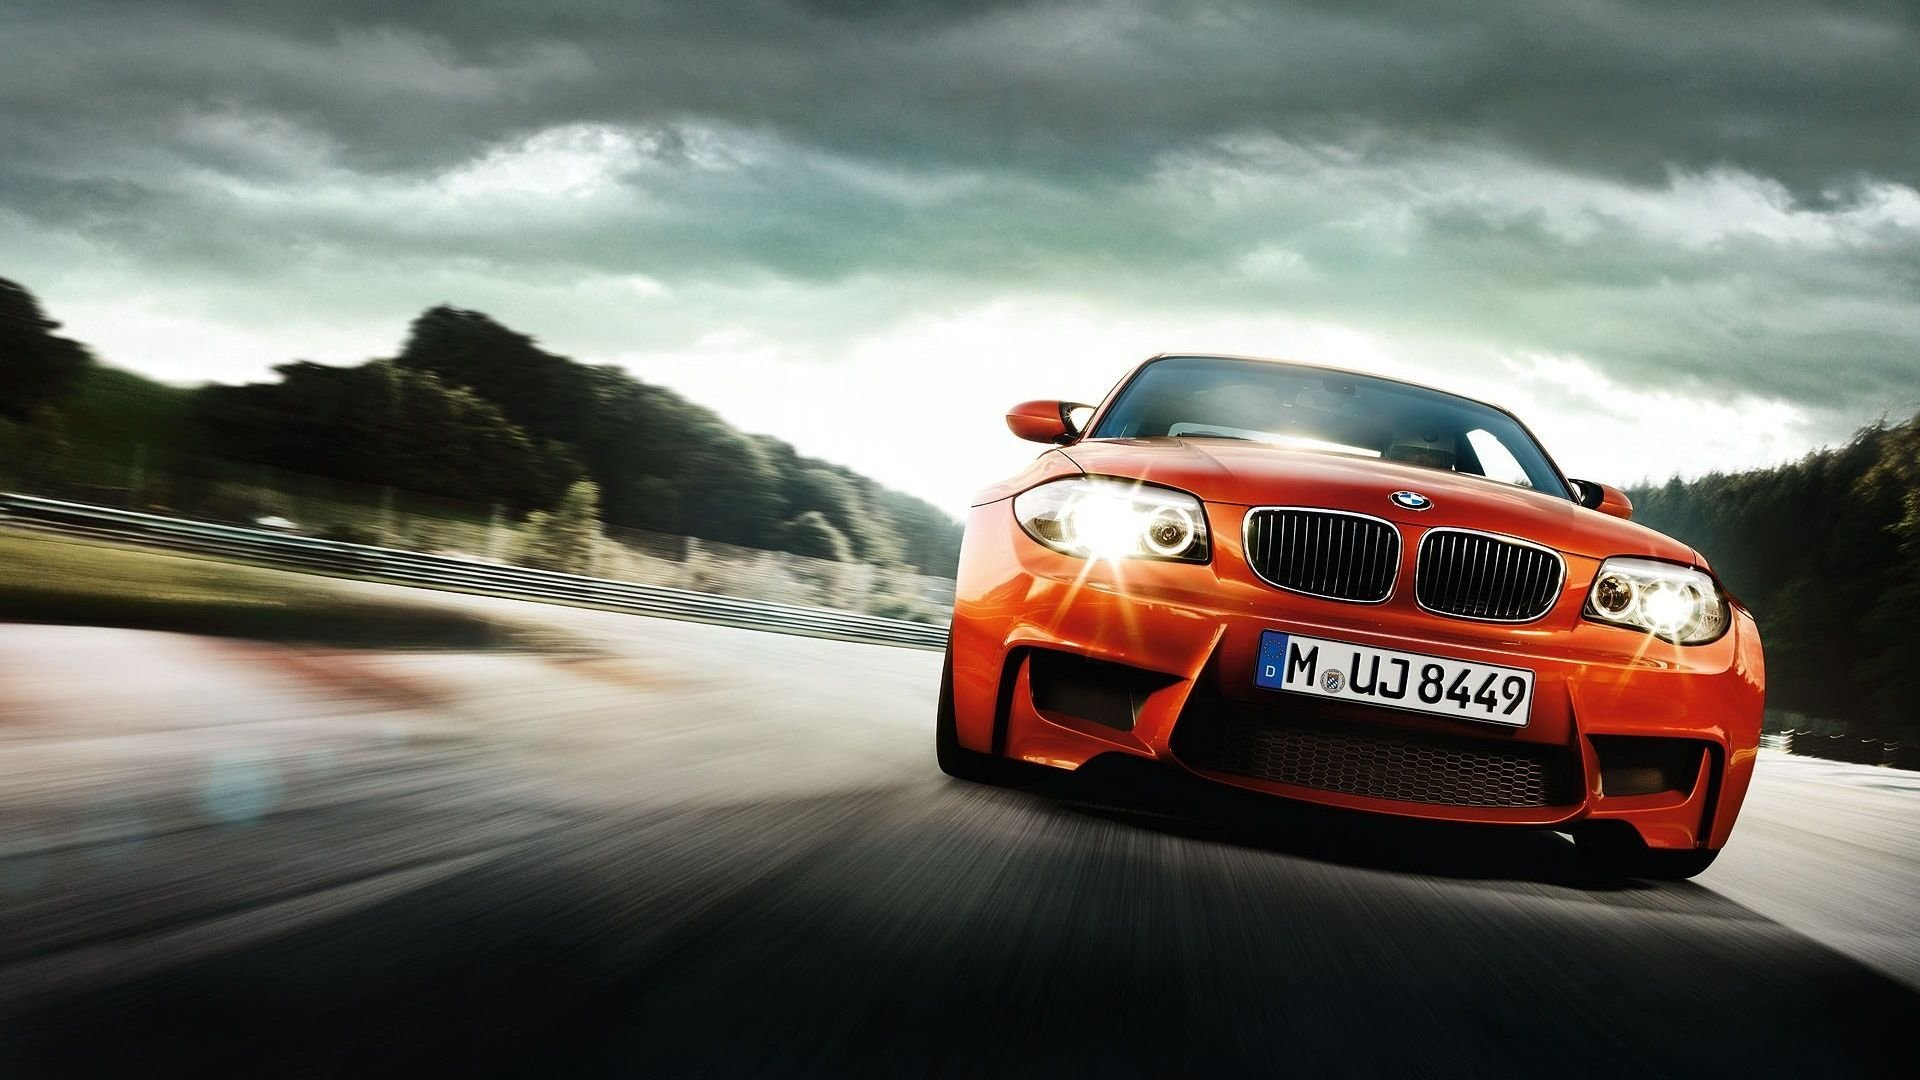 New Best Bmw Wallpapers For Desktop Tablets In Hd For Download On This Month